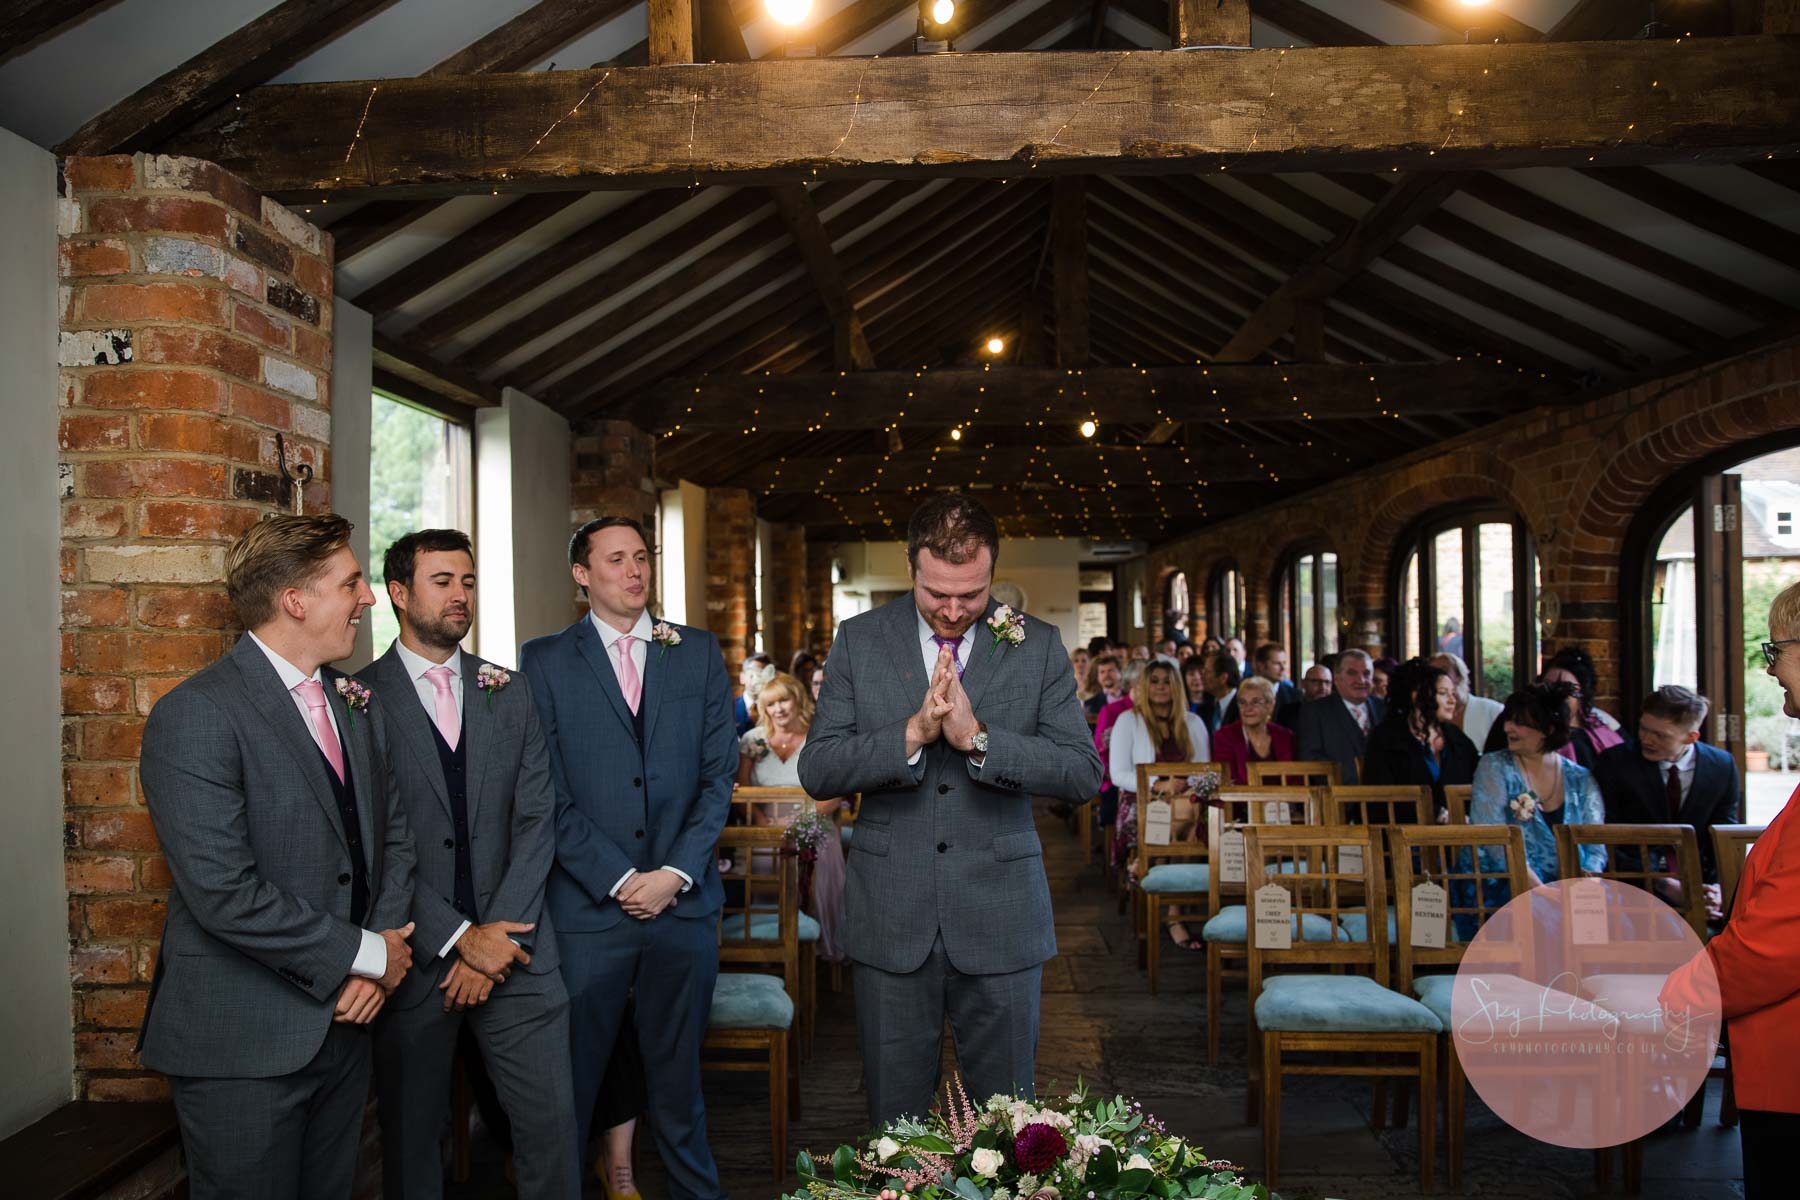 grooms men and groom await the arrival of the bride